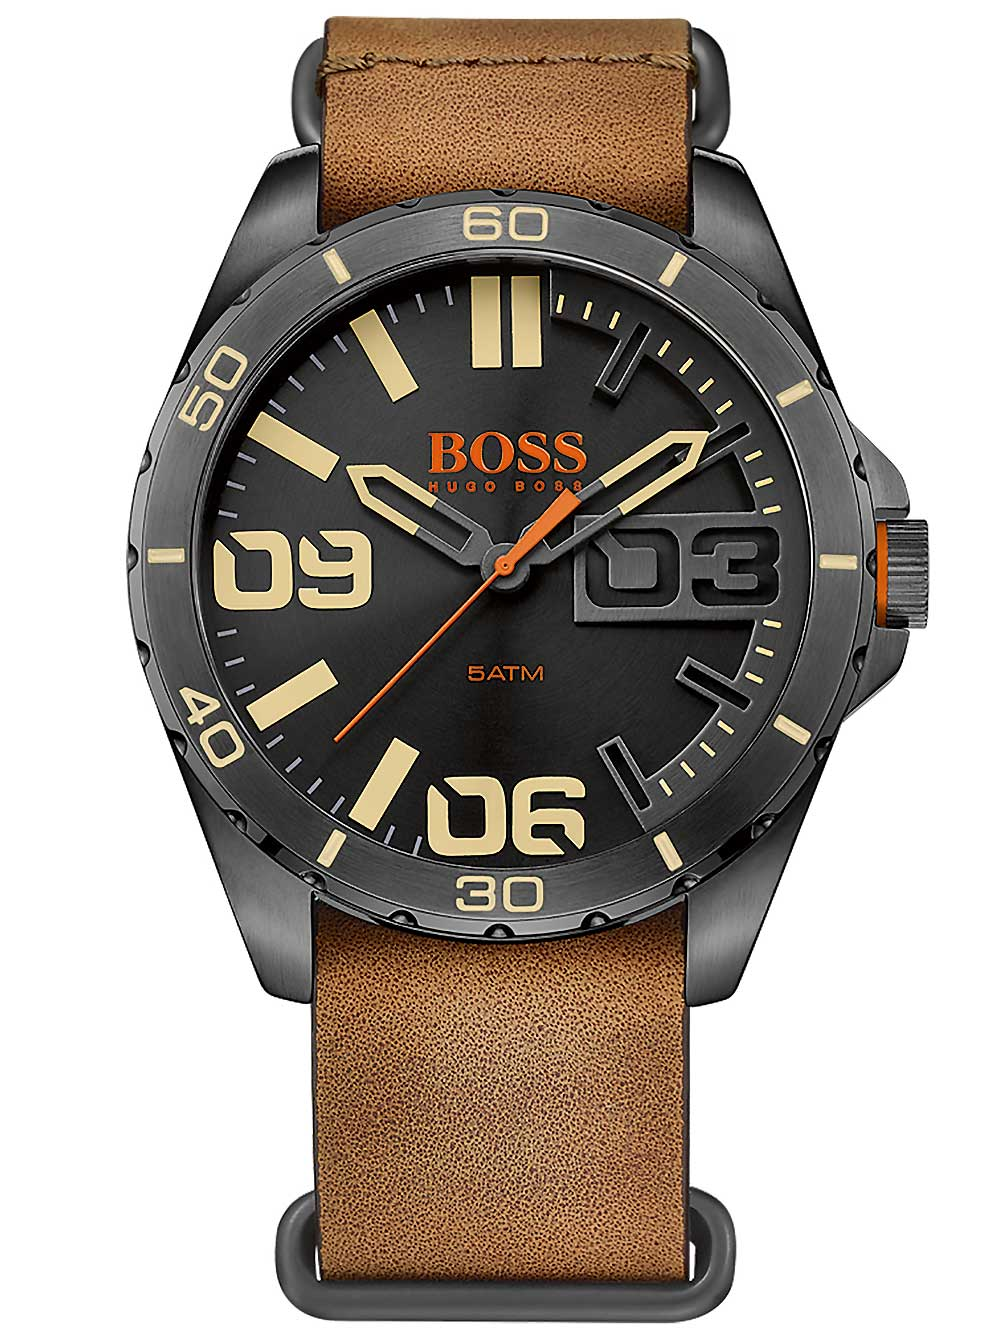 BOSS ORANGE 1513316 Berlin 5ATM 48mm